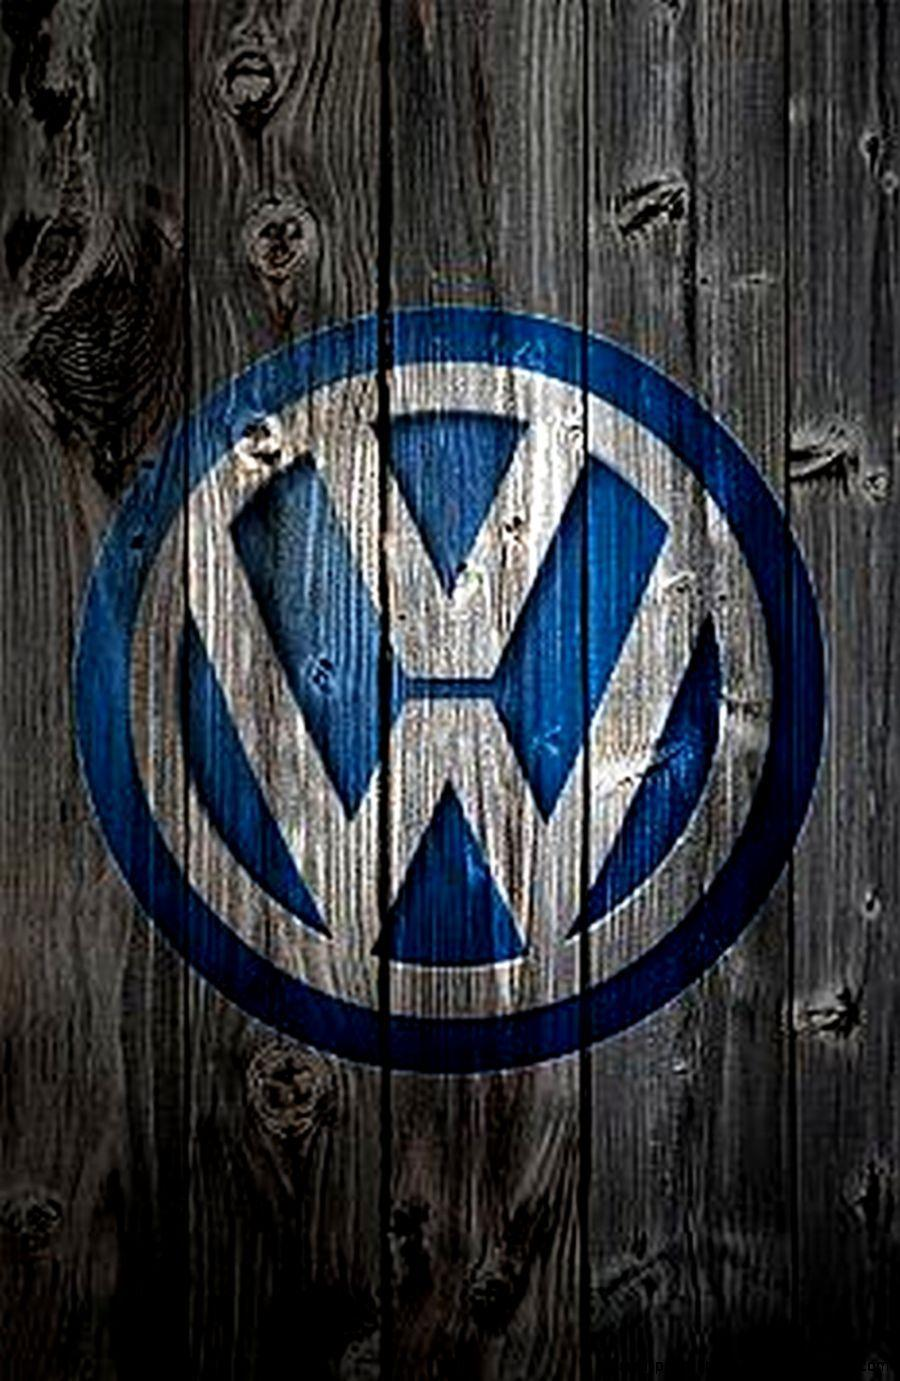 Best Volkswagen Car Picture and Logo wallpaper | Best Cool .